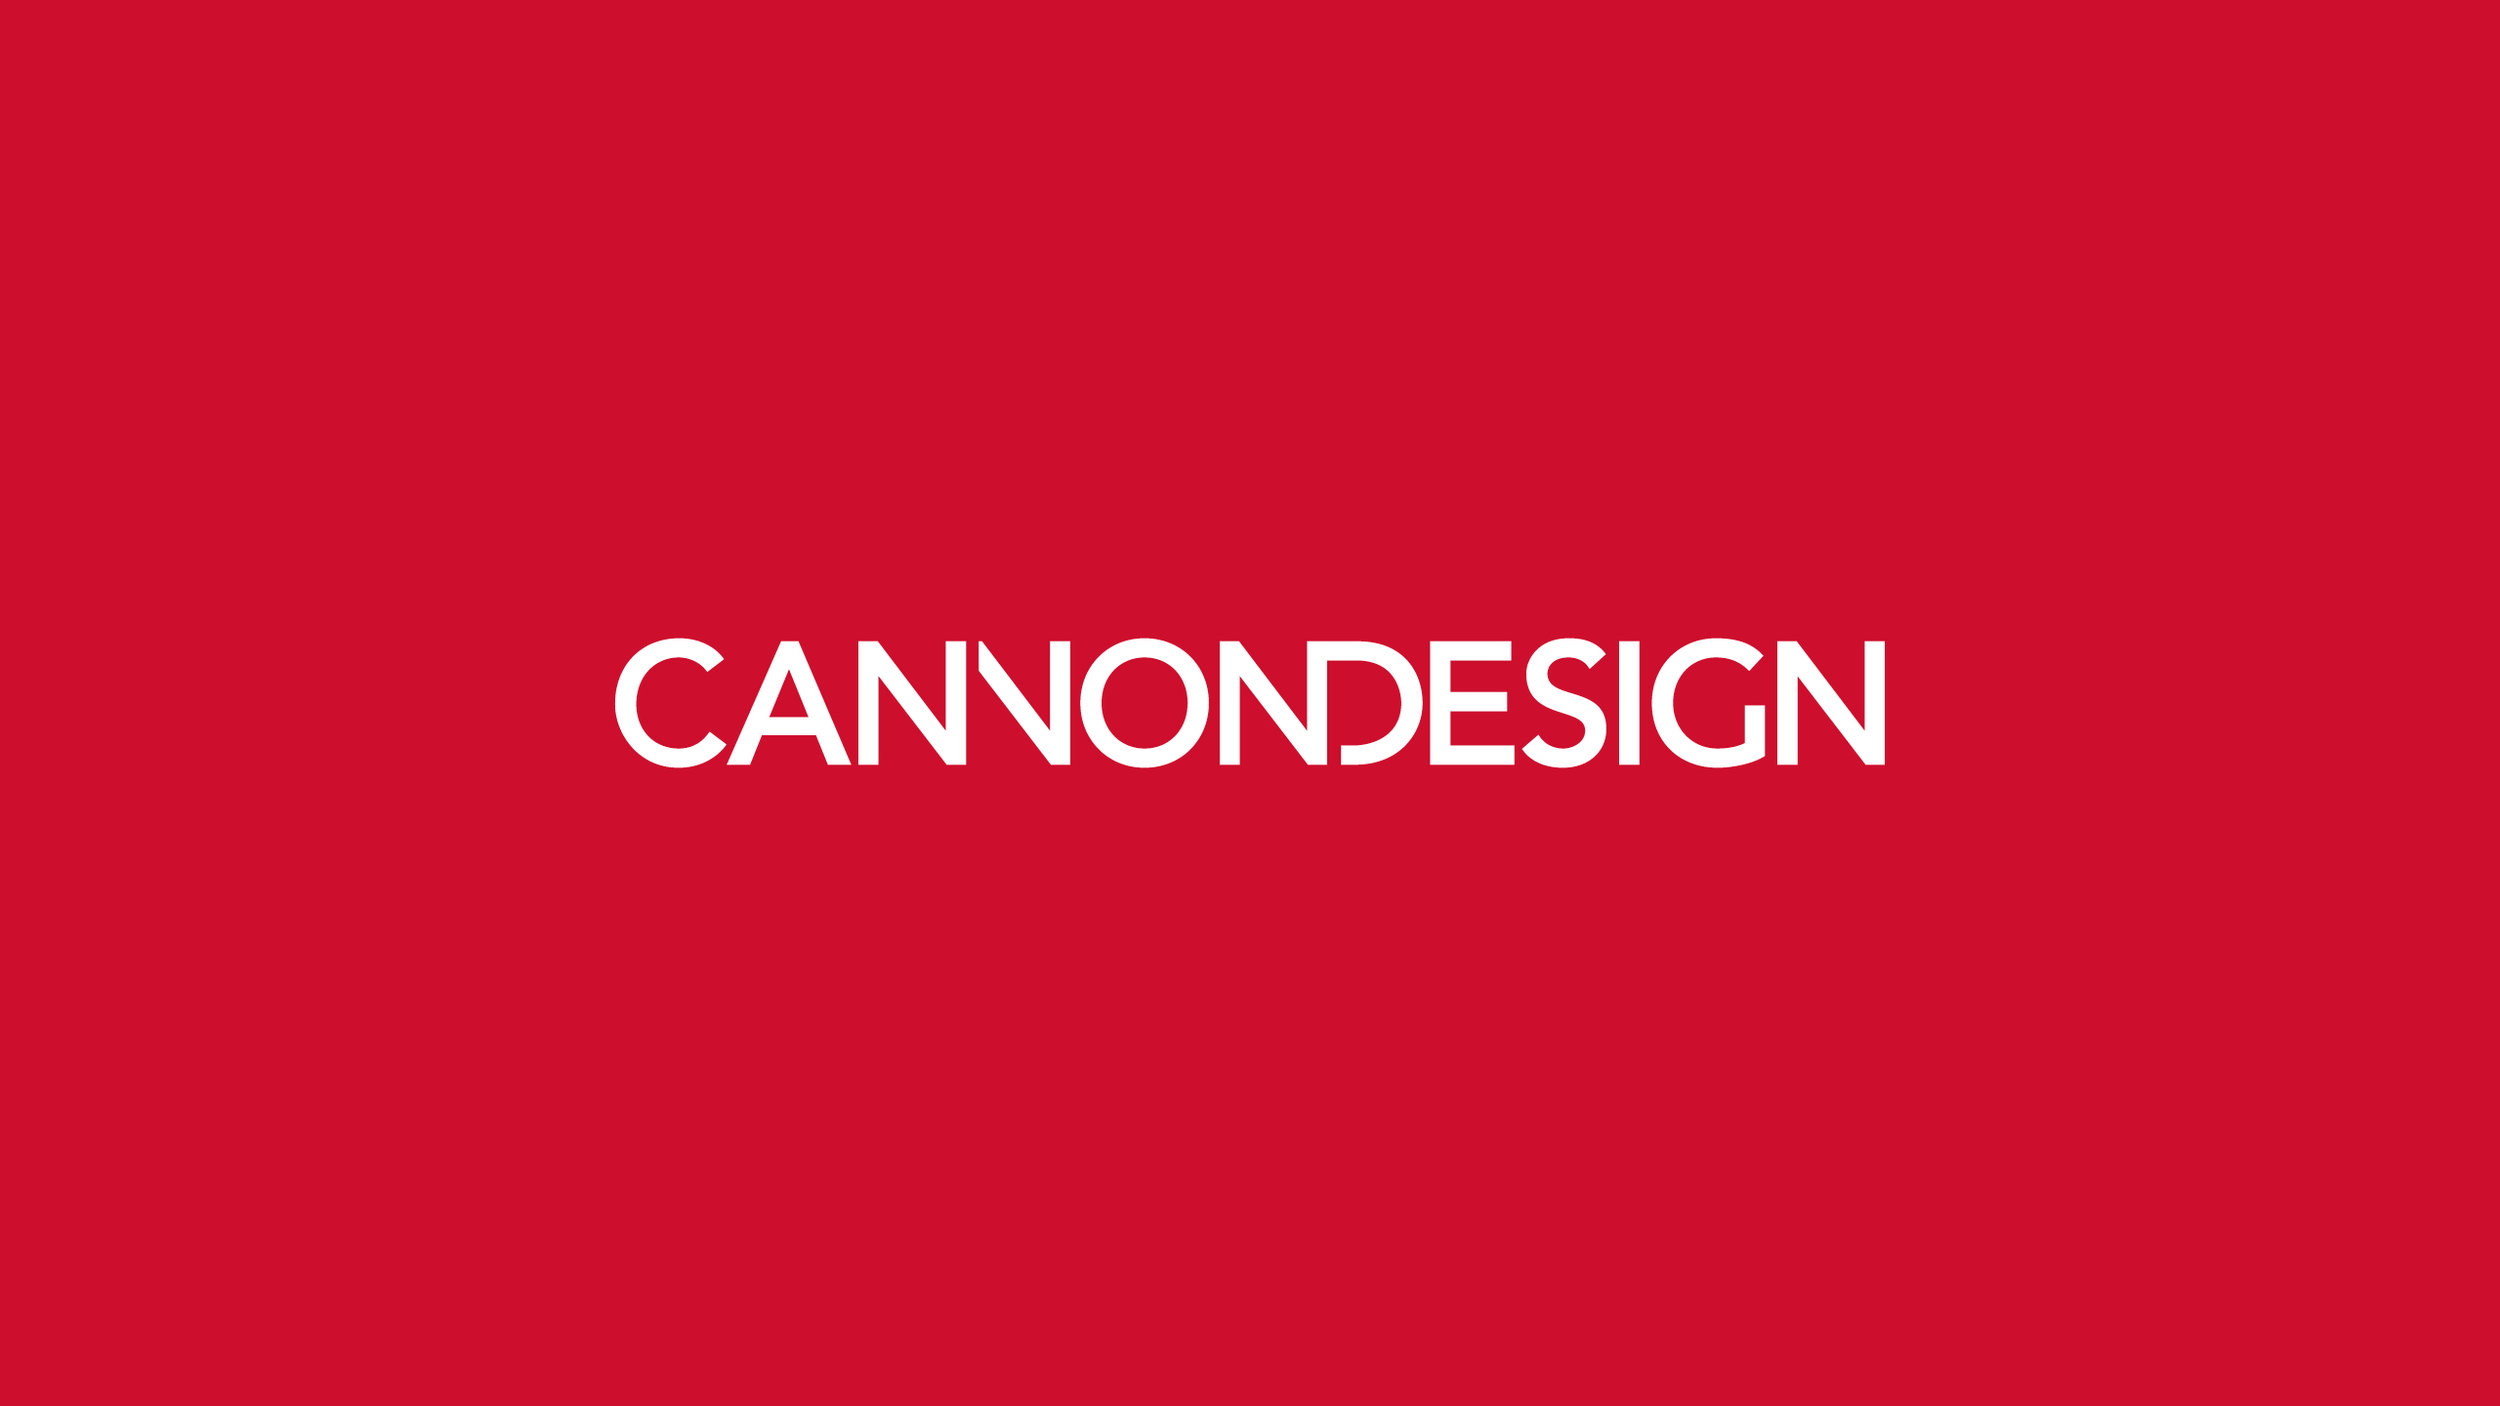 CannonDesign4.jpg